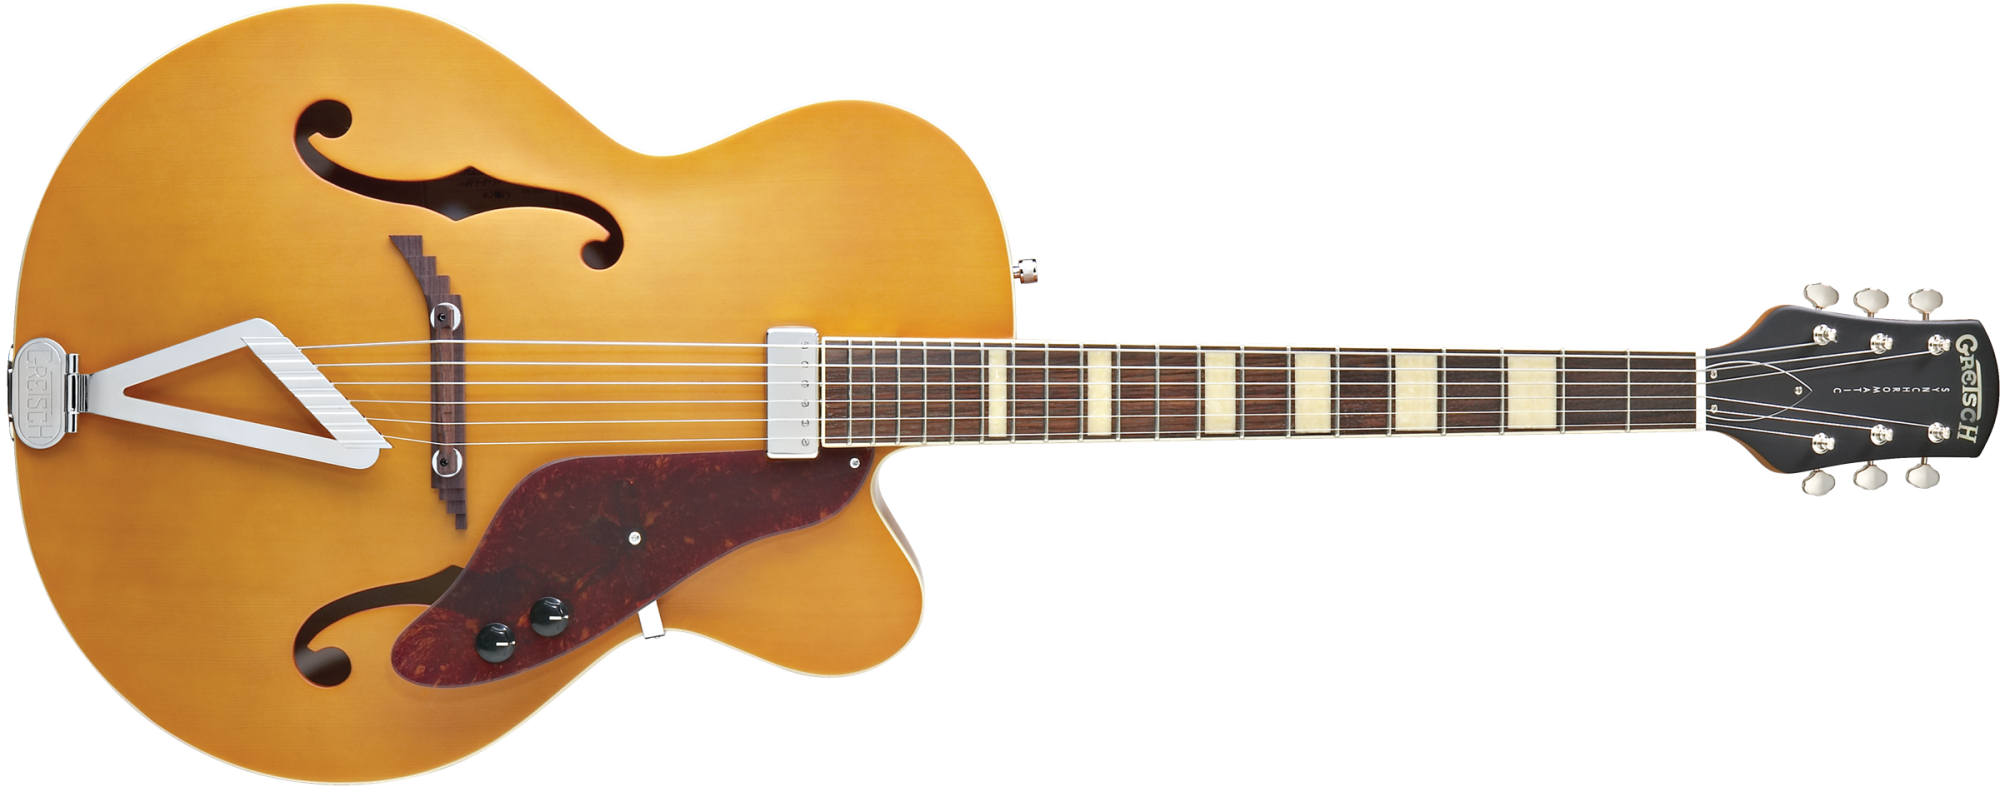 Gretsch G100CE Synchromatic Archtop Cutaway Electric Rosewood Fingerboard Flat Natural